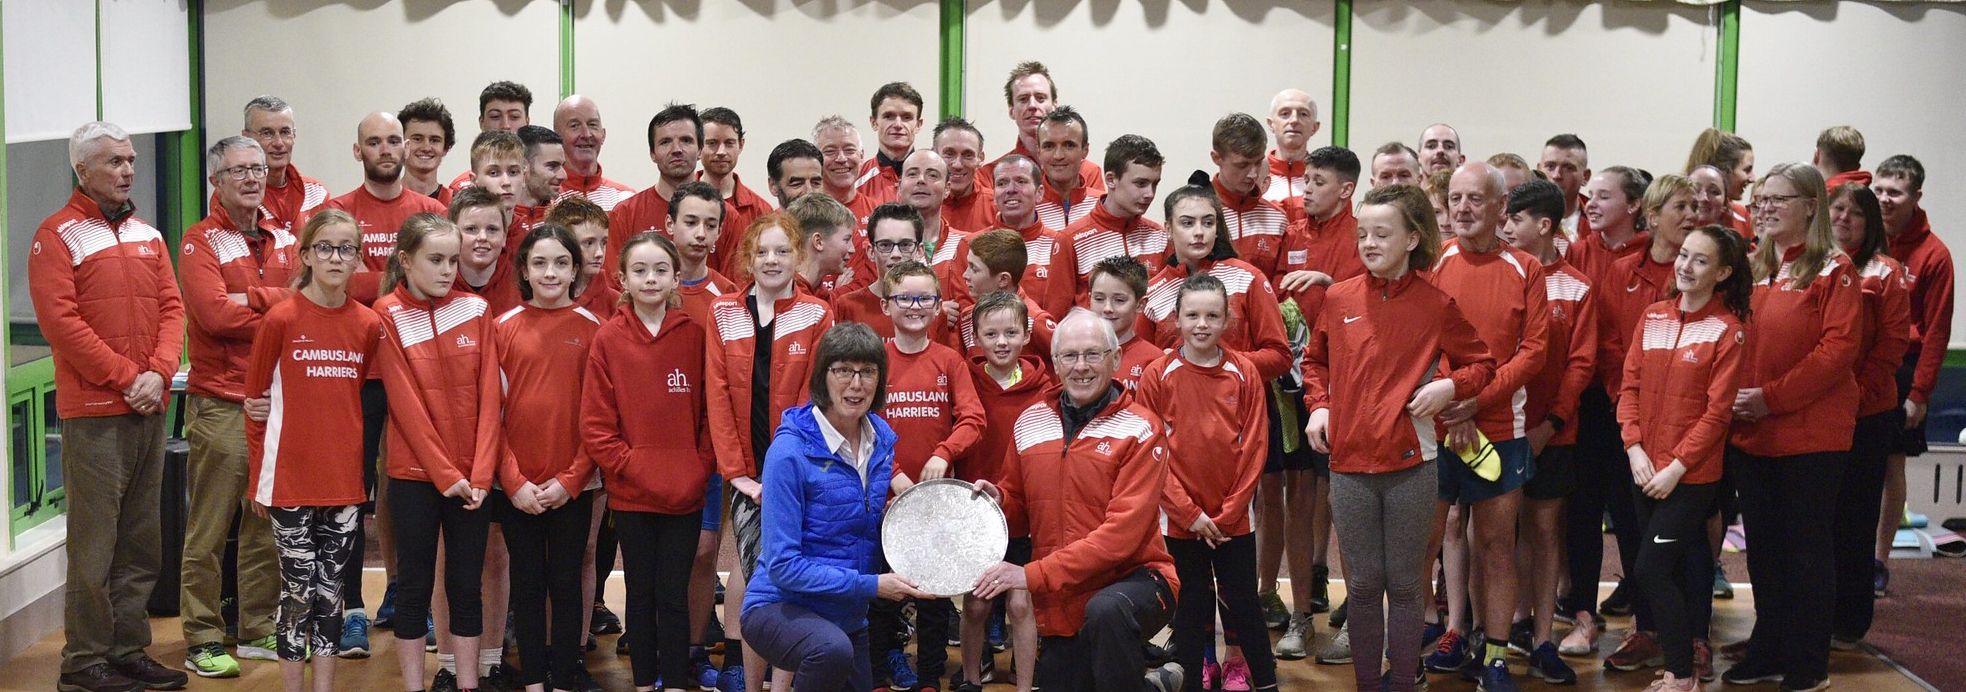 Members of Cambuslang Harriers witness the presentation of the AT Mays shield